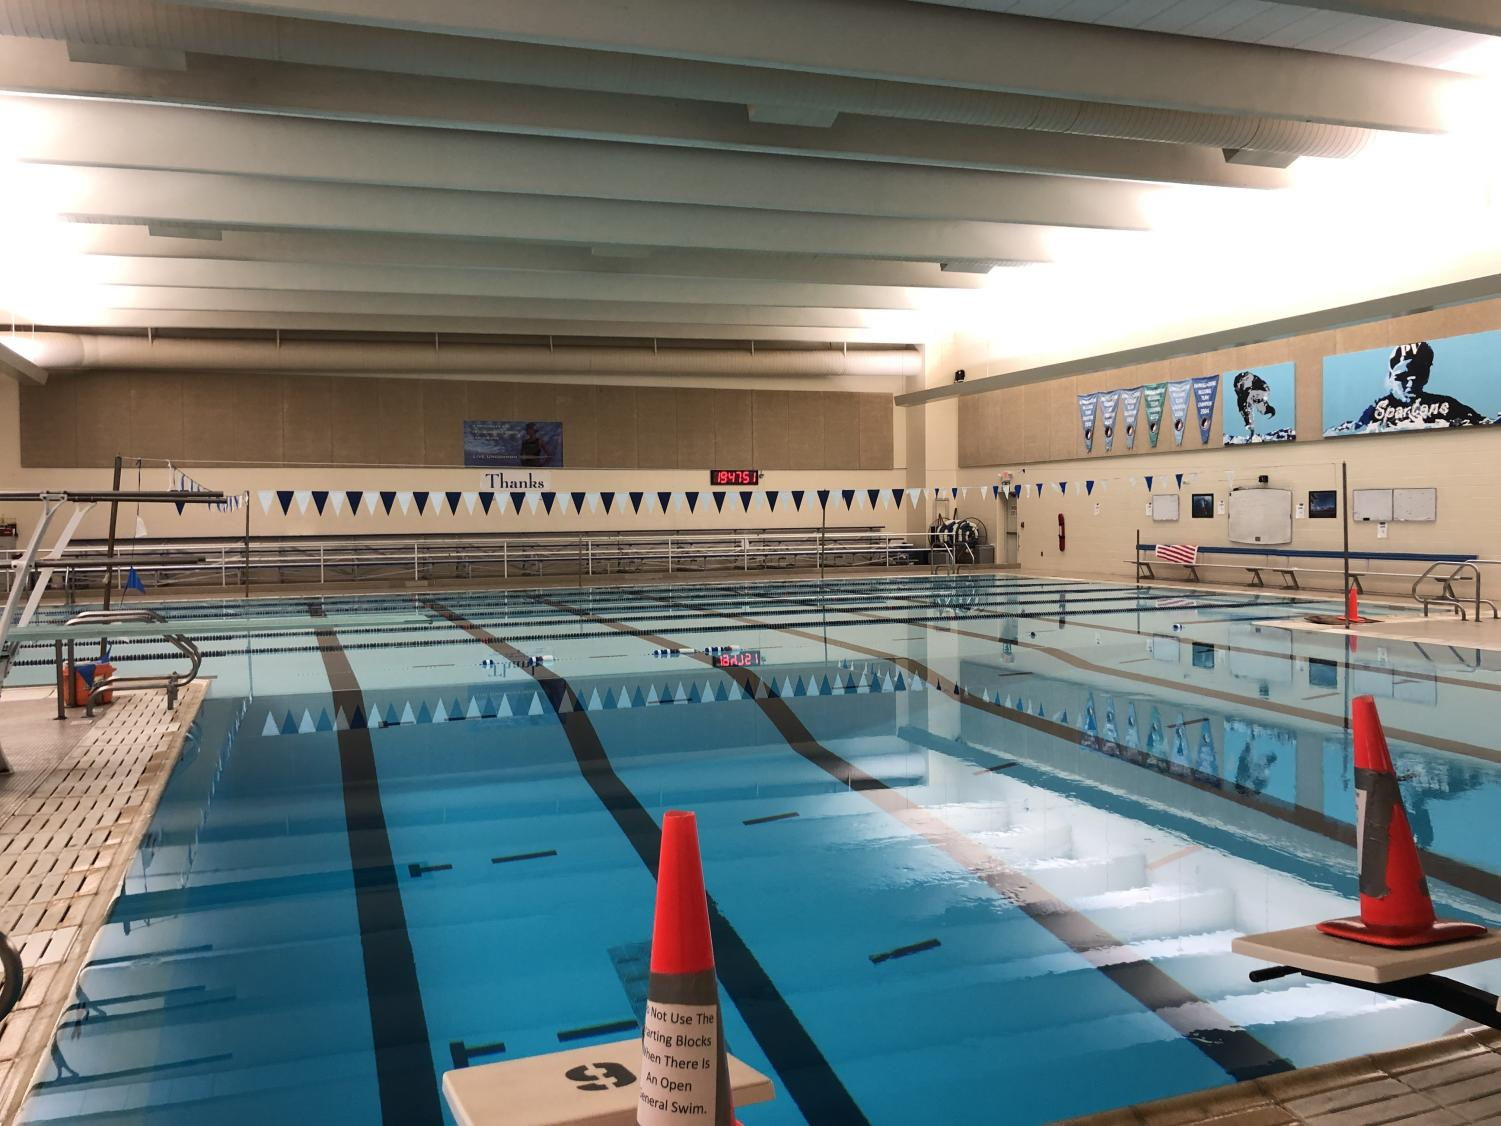 The PV pool bulkhead construction will start in the spring of 2020, along with new starting blocks.